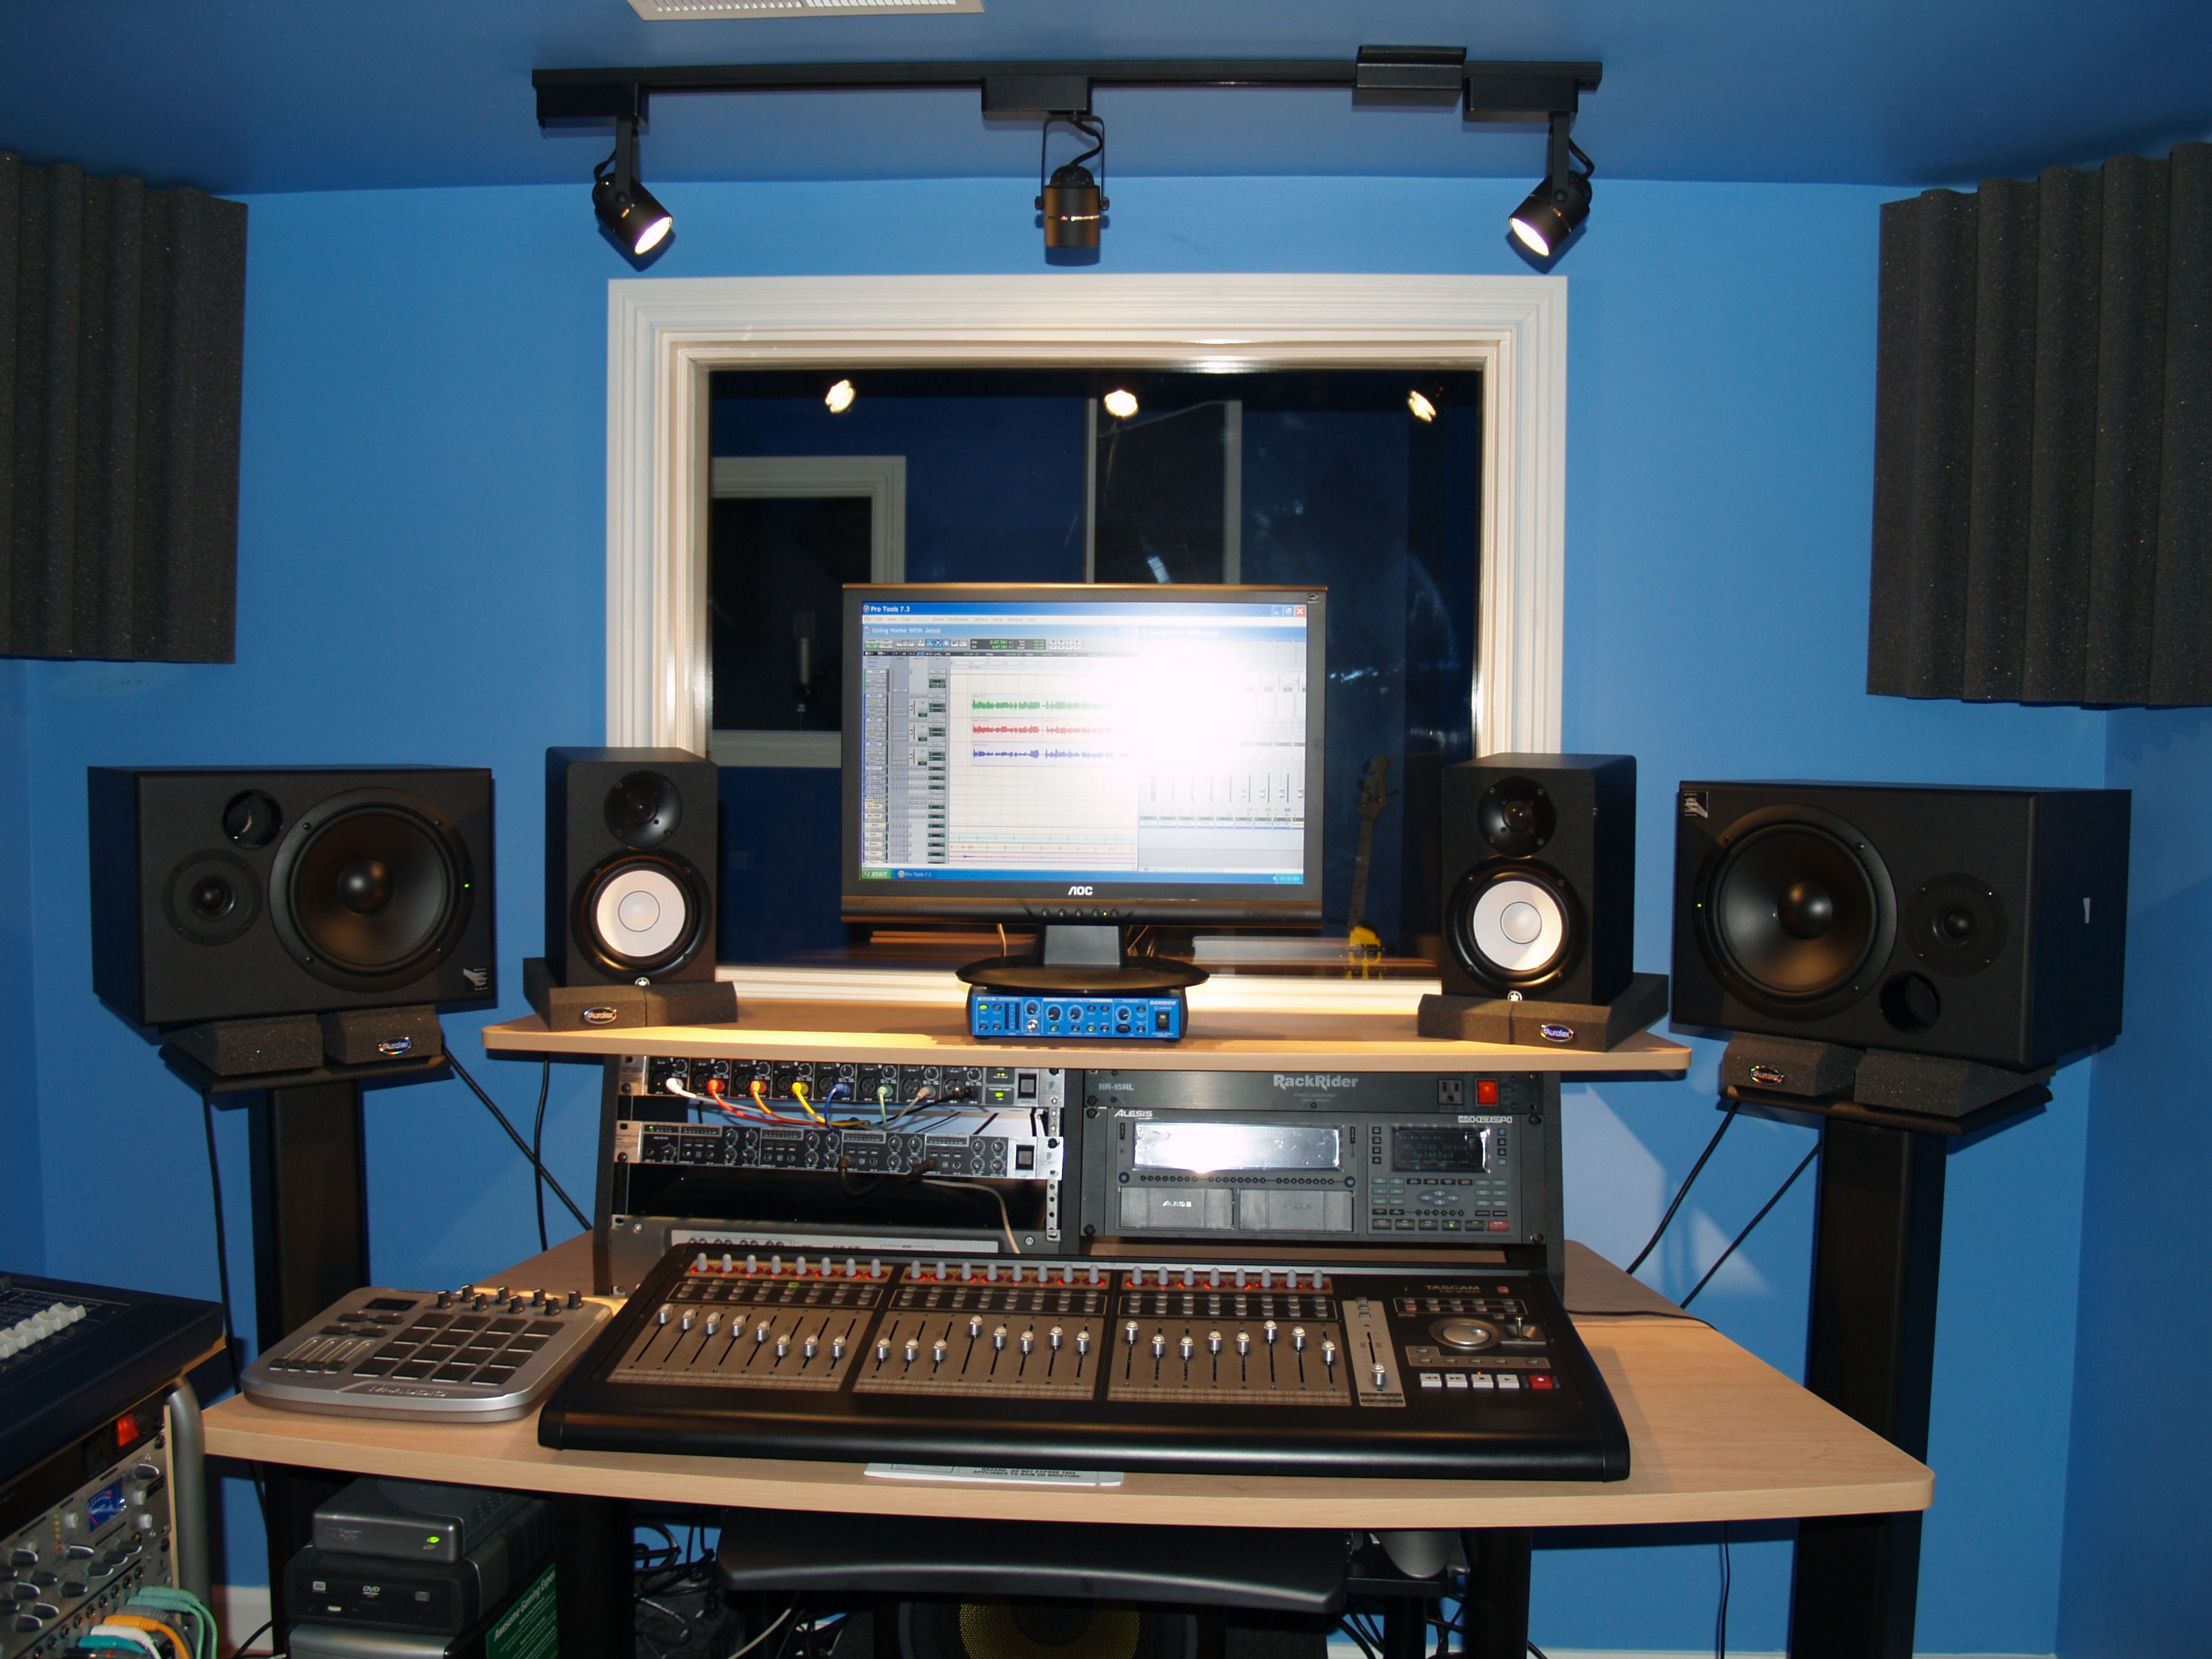 Phenomenal Recording Studio Set Up Then Again The Closets Will Be Empty Largest Home Design Picture Inspirations Pitcheantrous